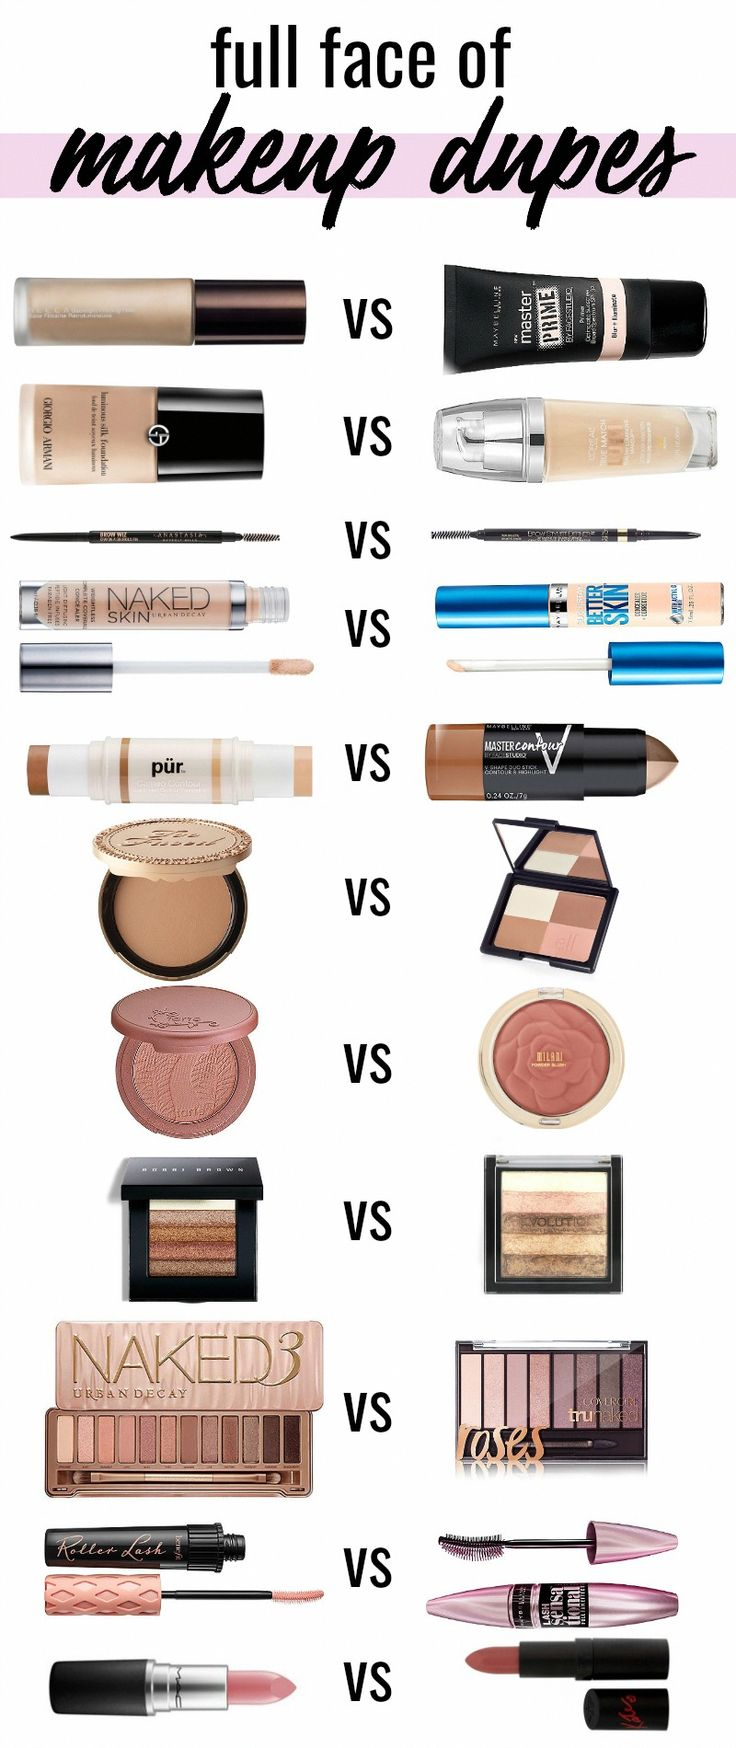 Full face of makeup dupes, high end vs. drugstore makeup